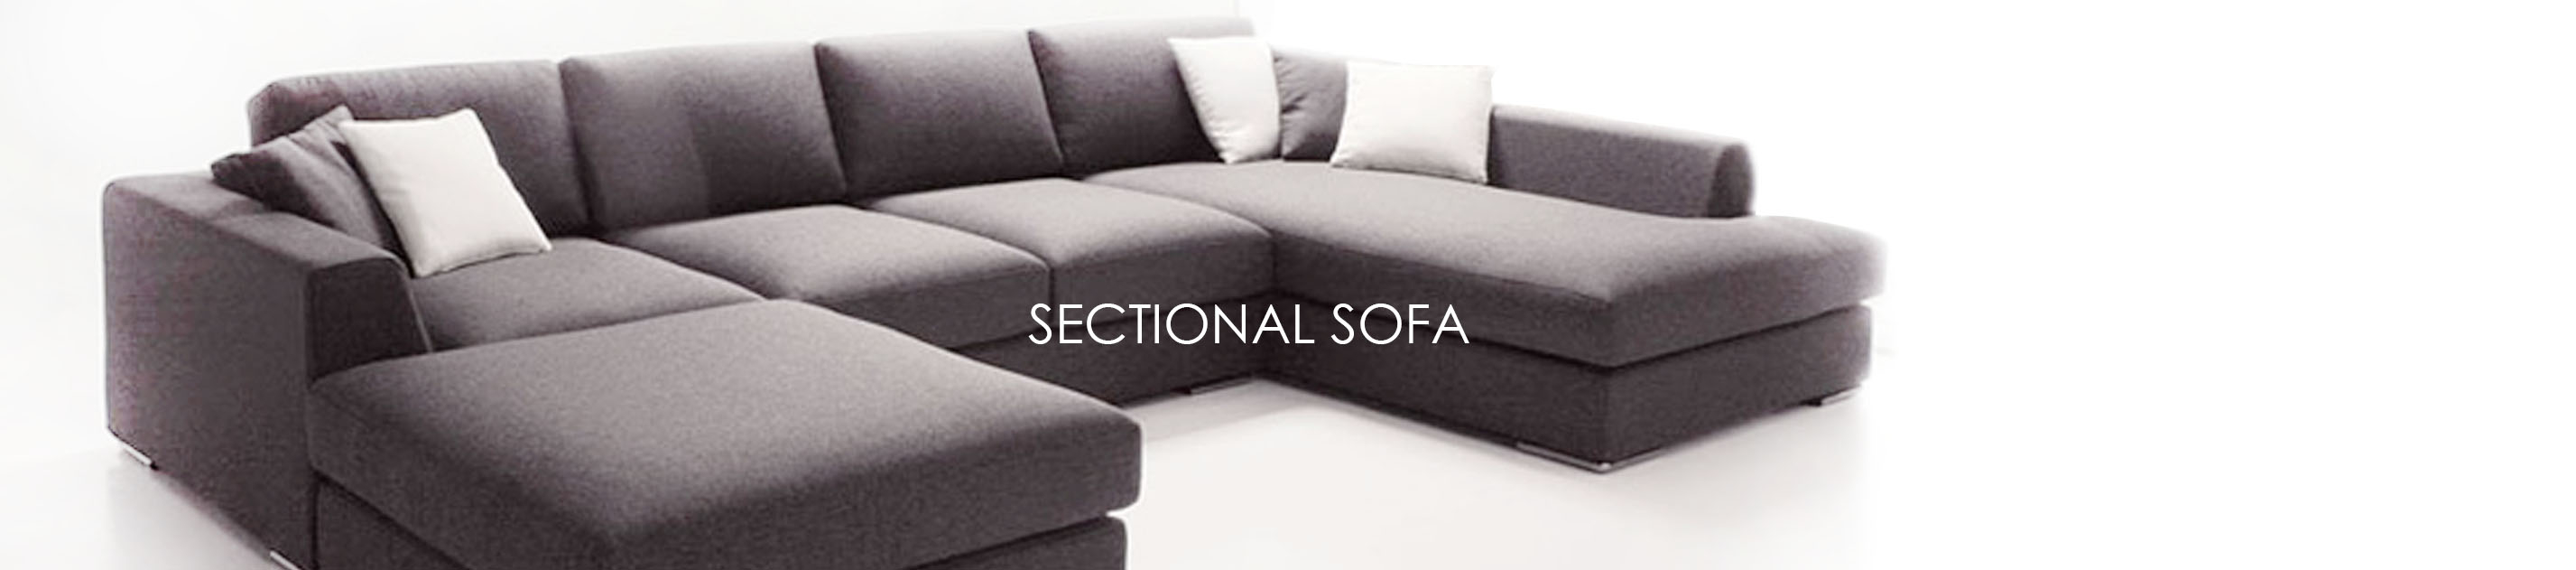 Improve The Quality Of Life  By Using The Newly Launched Leather Sofa & Solid Oak Wood Furniture By STOCKROOM